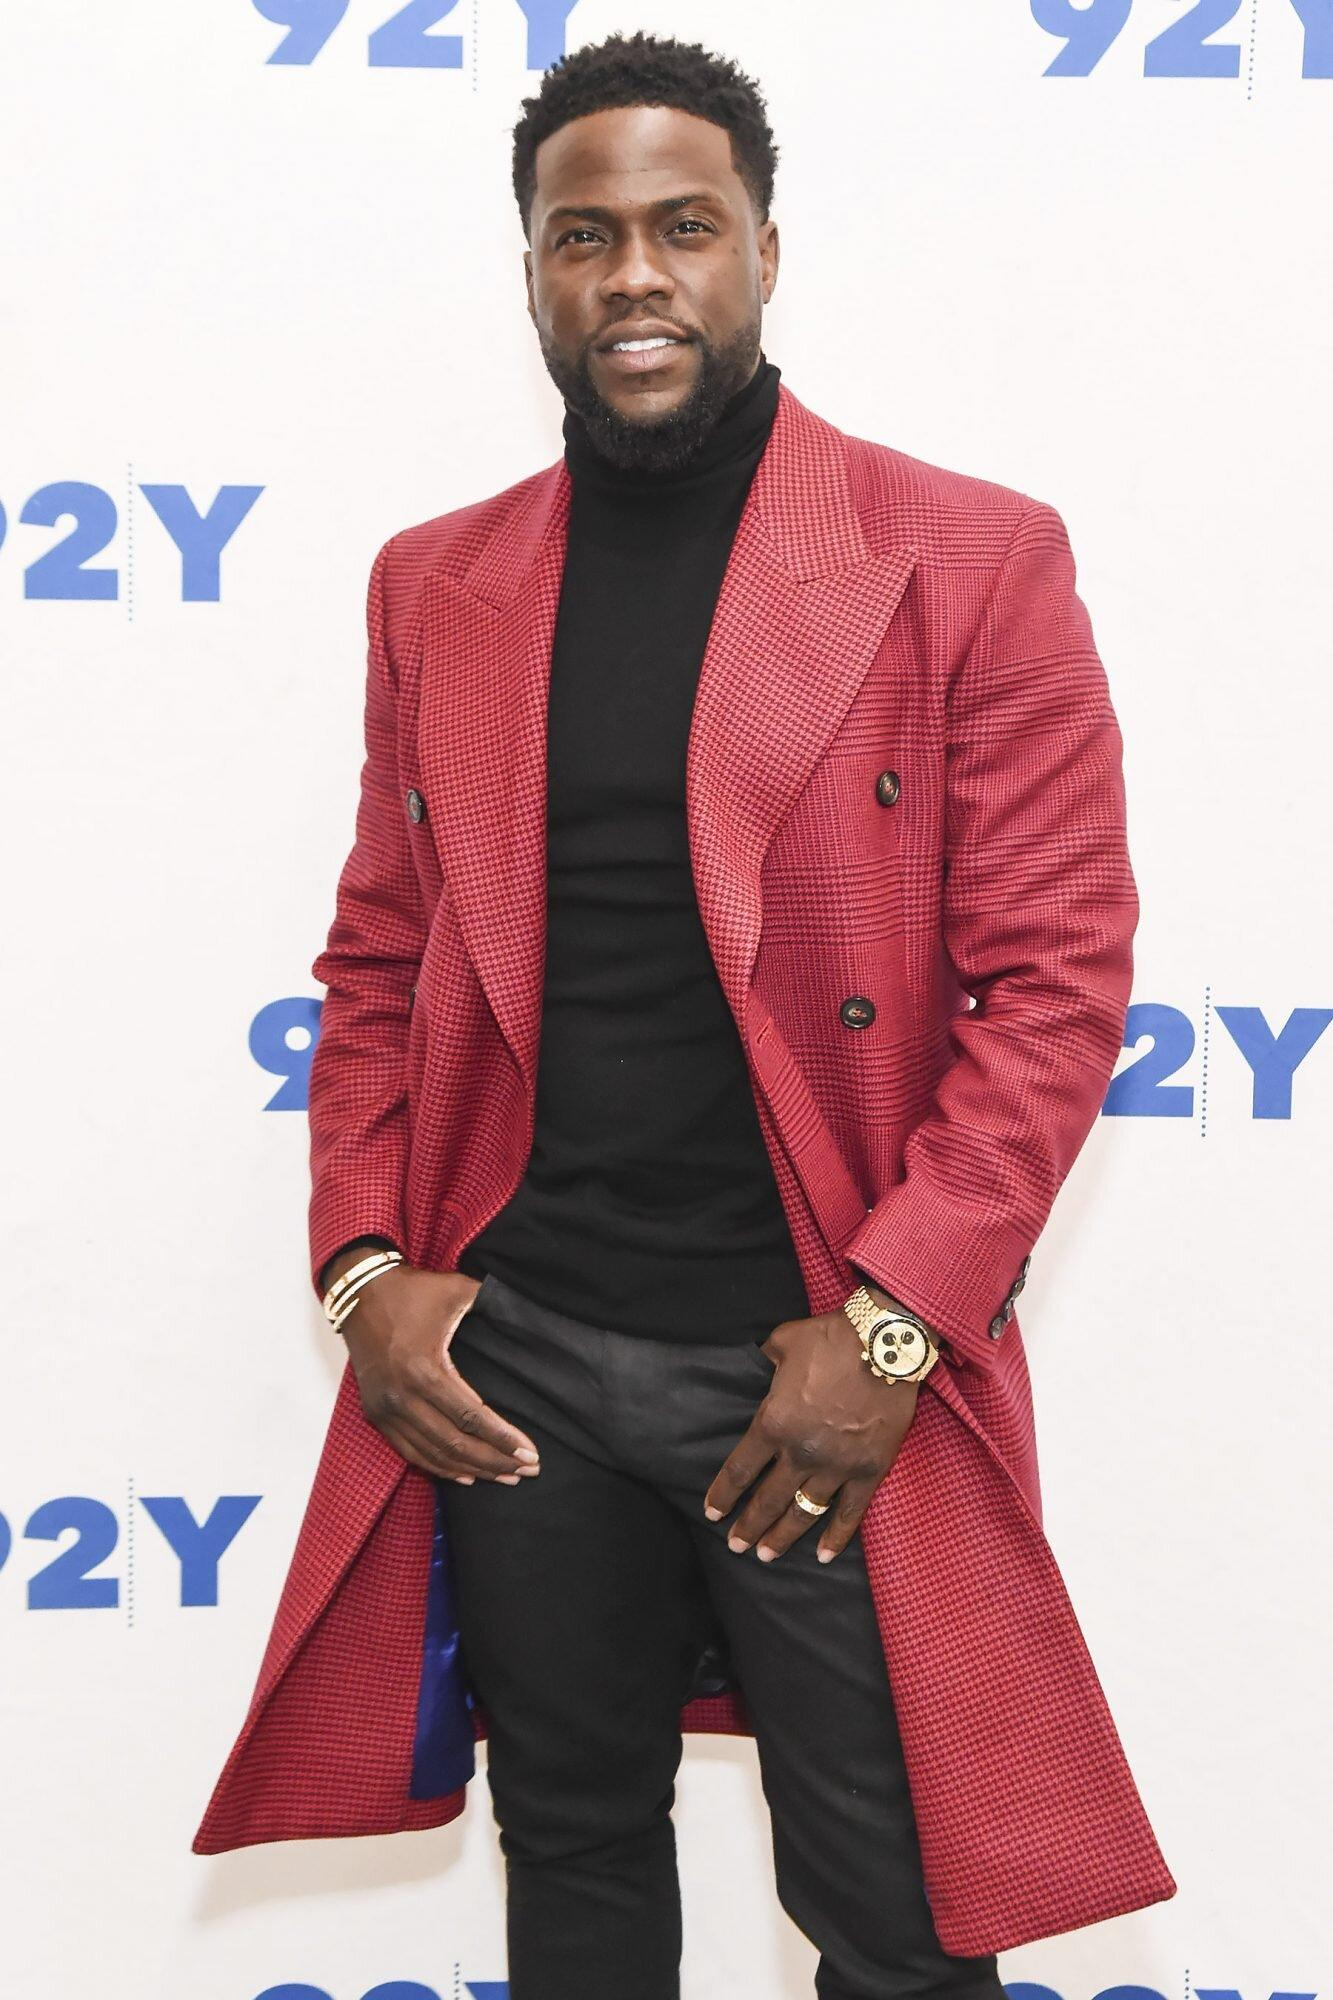 Kevin Hart Says He Turned Down an Offer to Go to Space But Is Not Ruling Out a Future Trip Just Yet